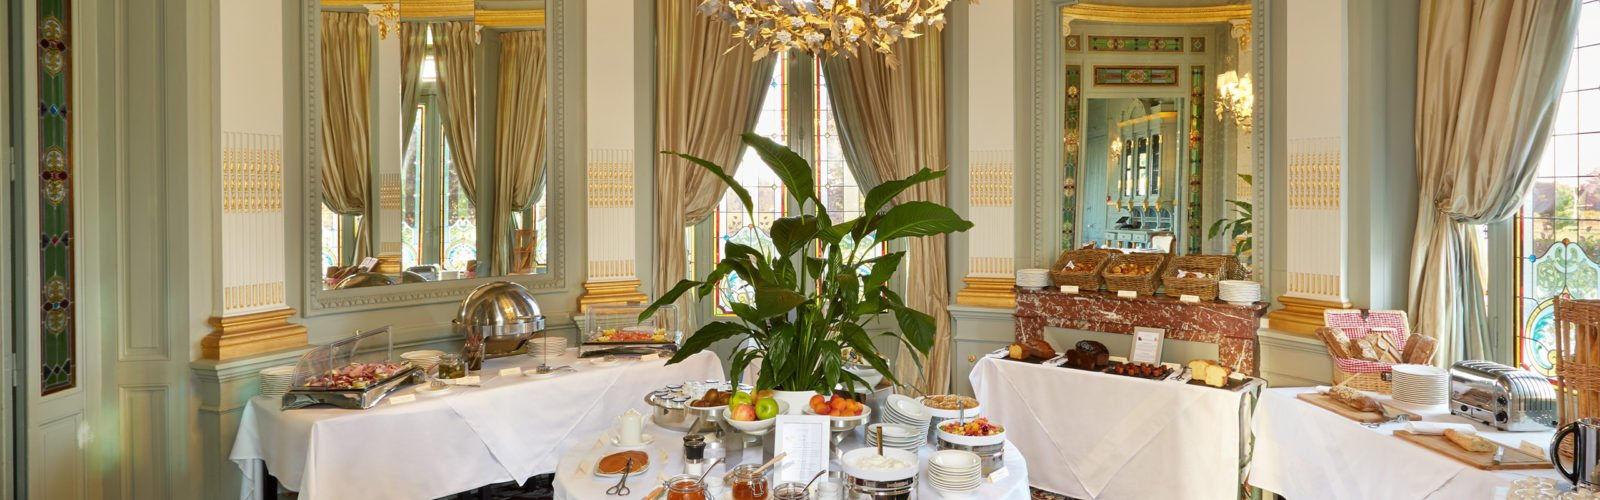 chateau-grand-barrail-dining-room